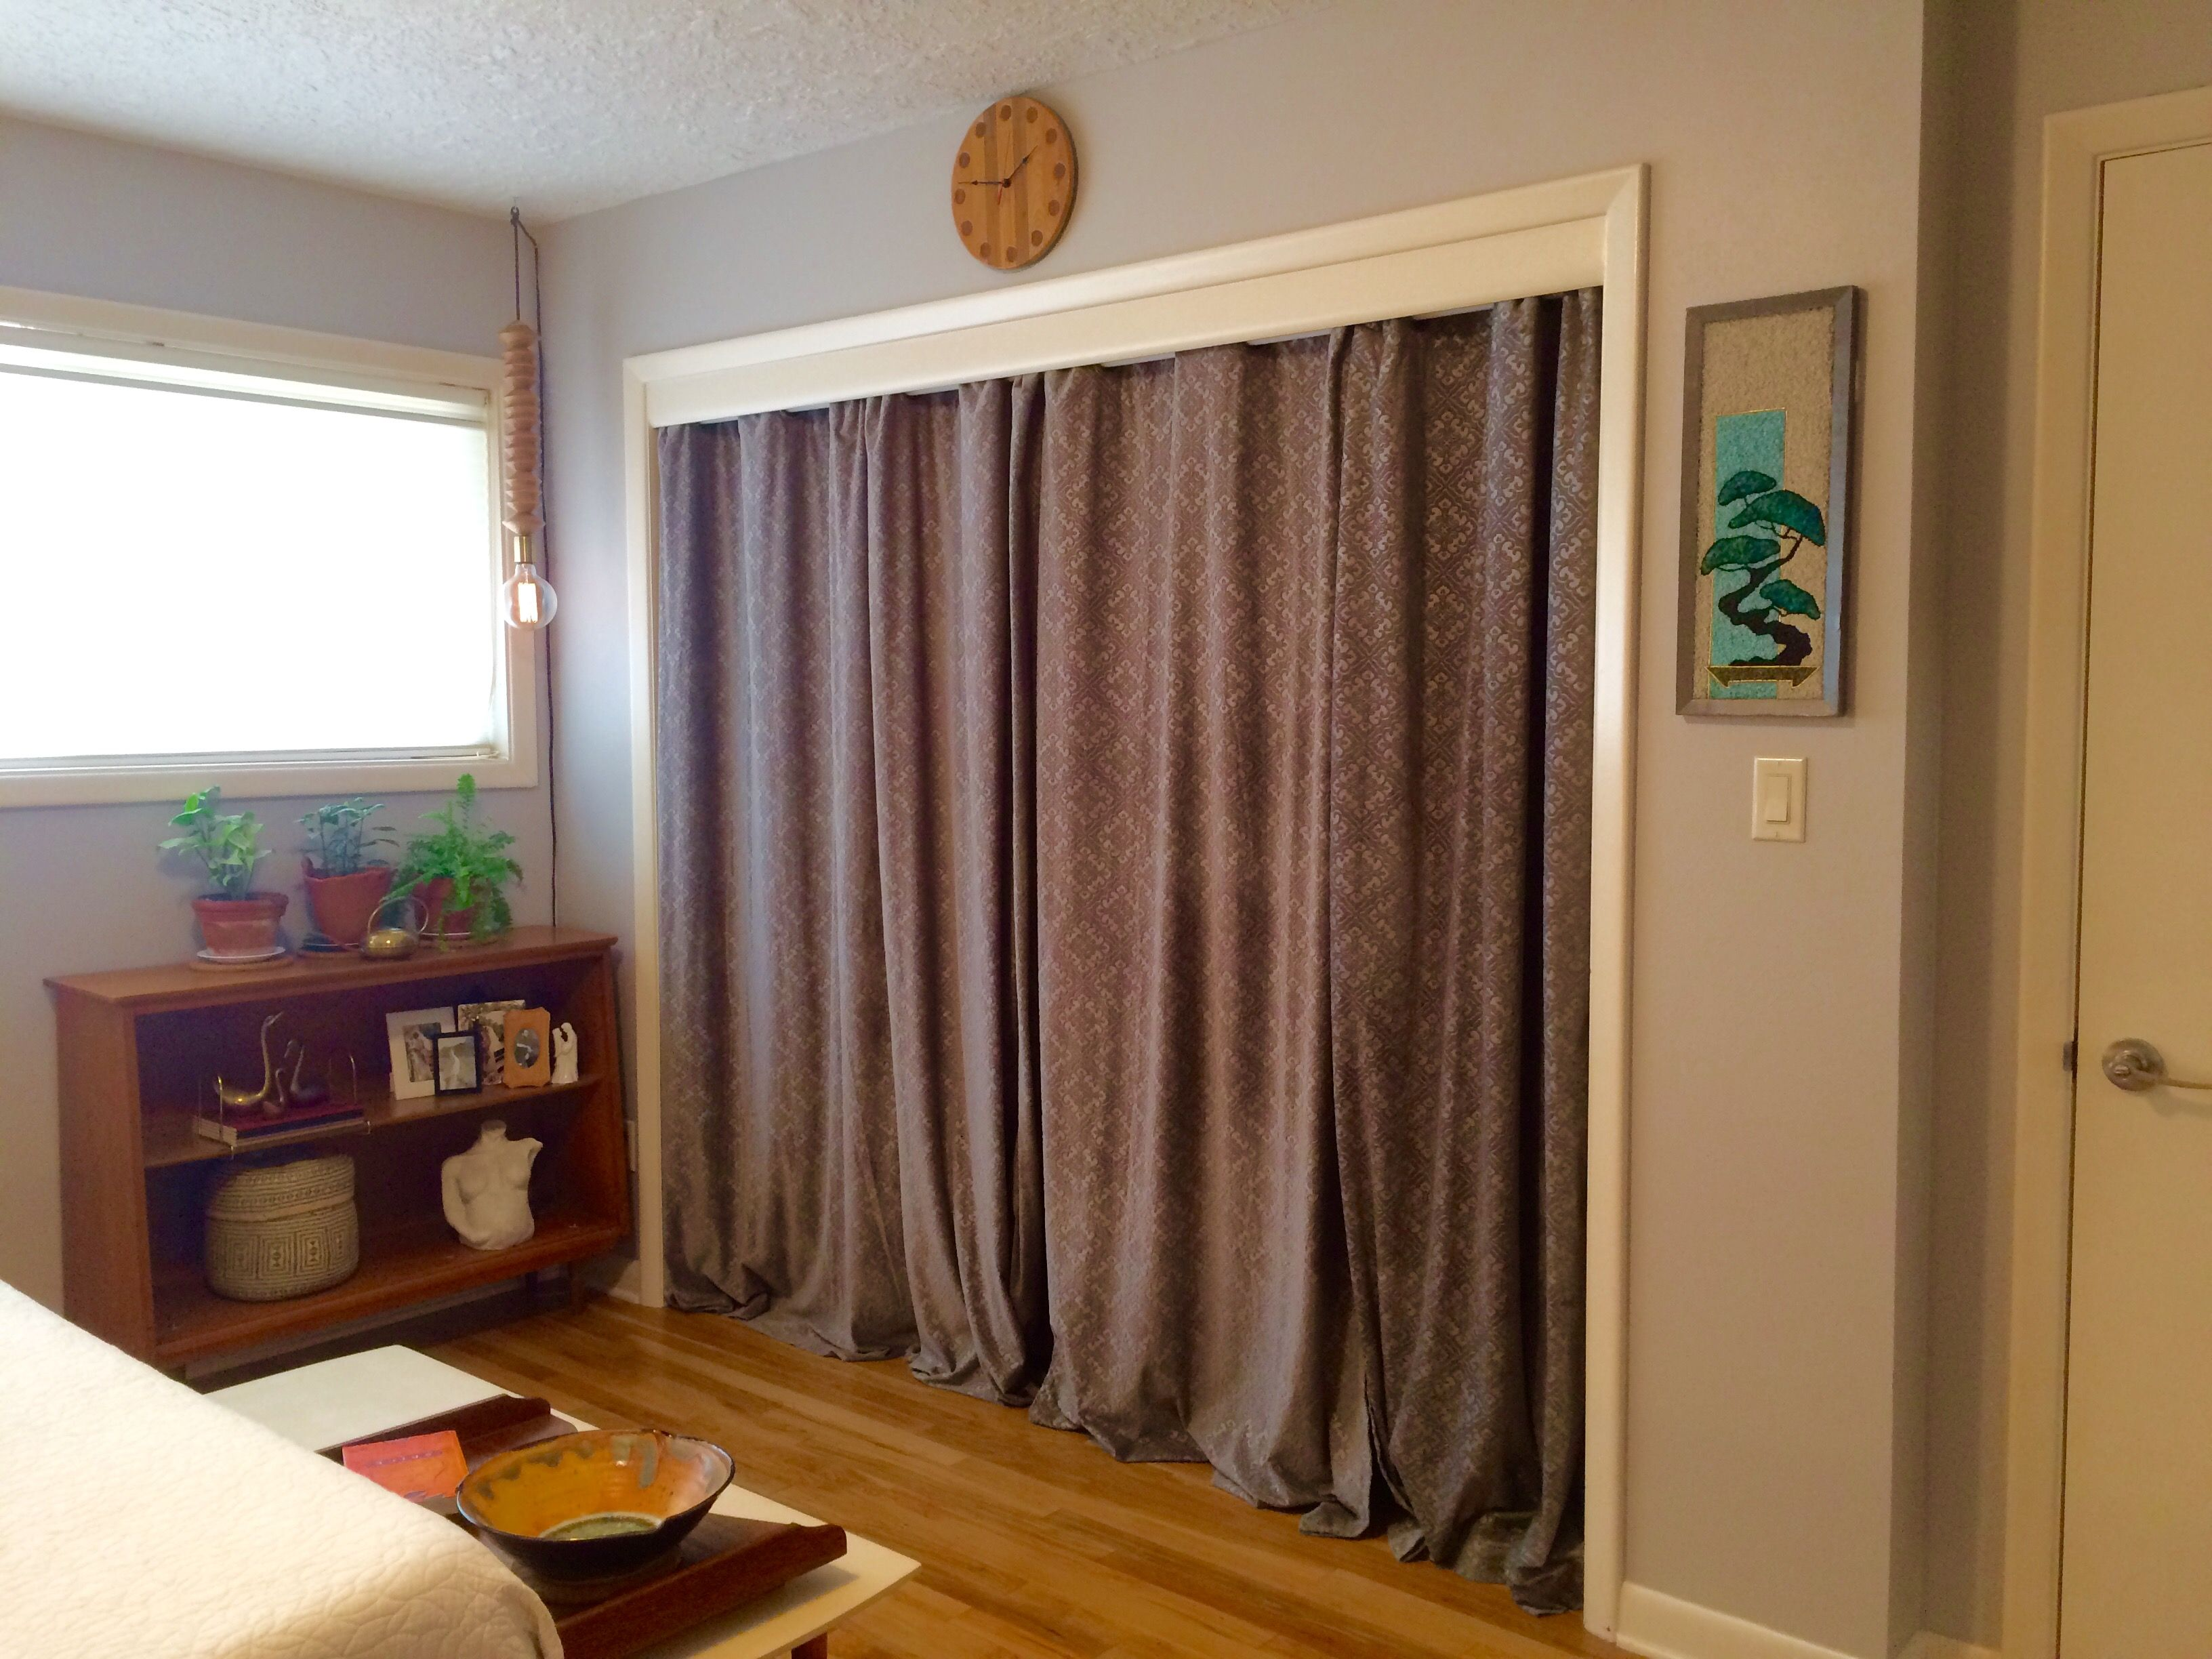 Uncategorized Curtains Instead Of Closet Doors Banish Sliding Closet Doors  And Use Curtains Instead Twice Instead